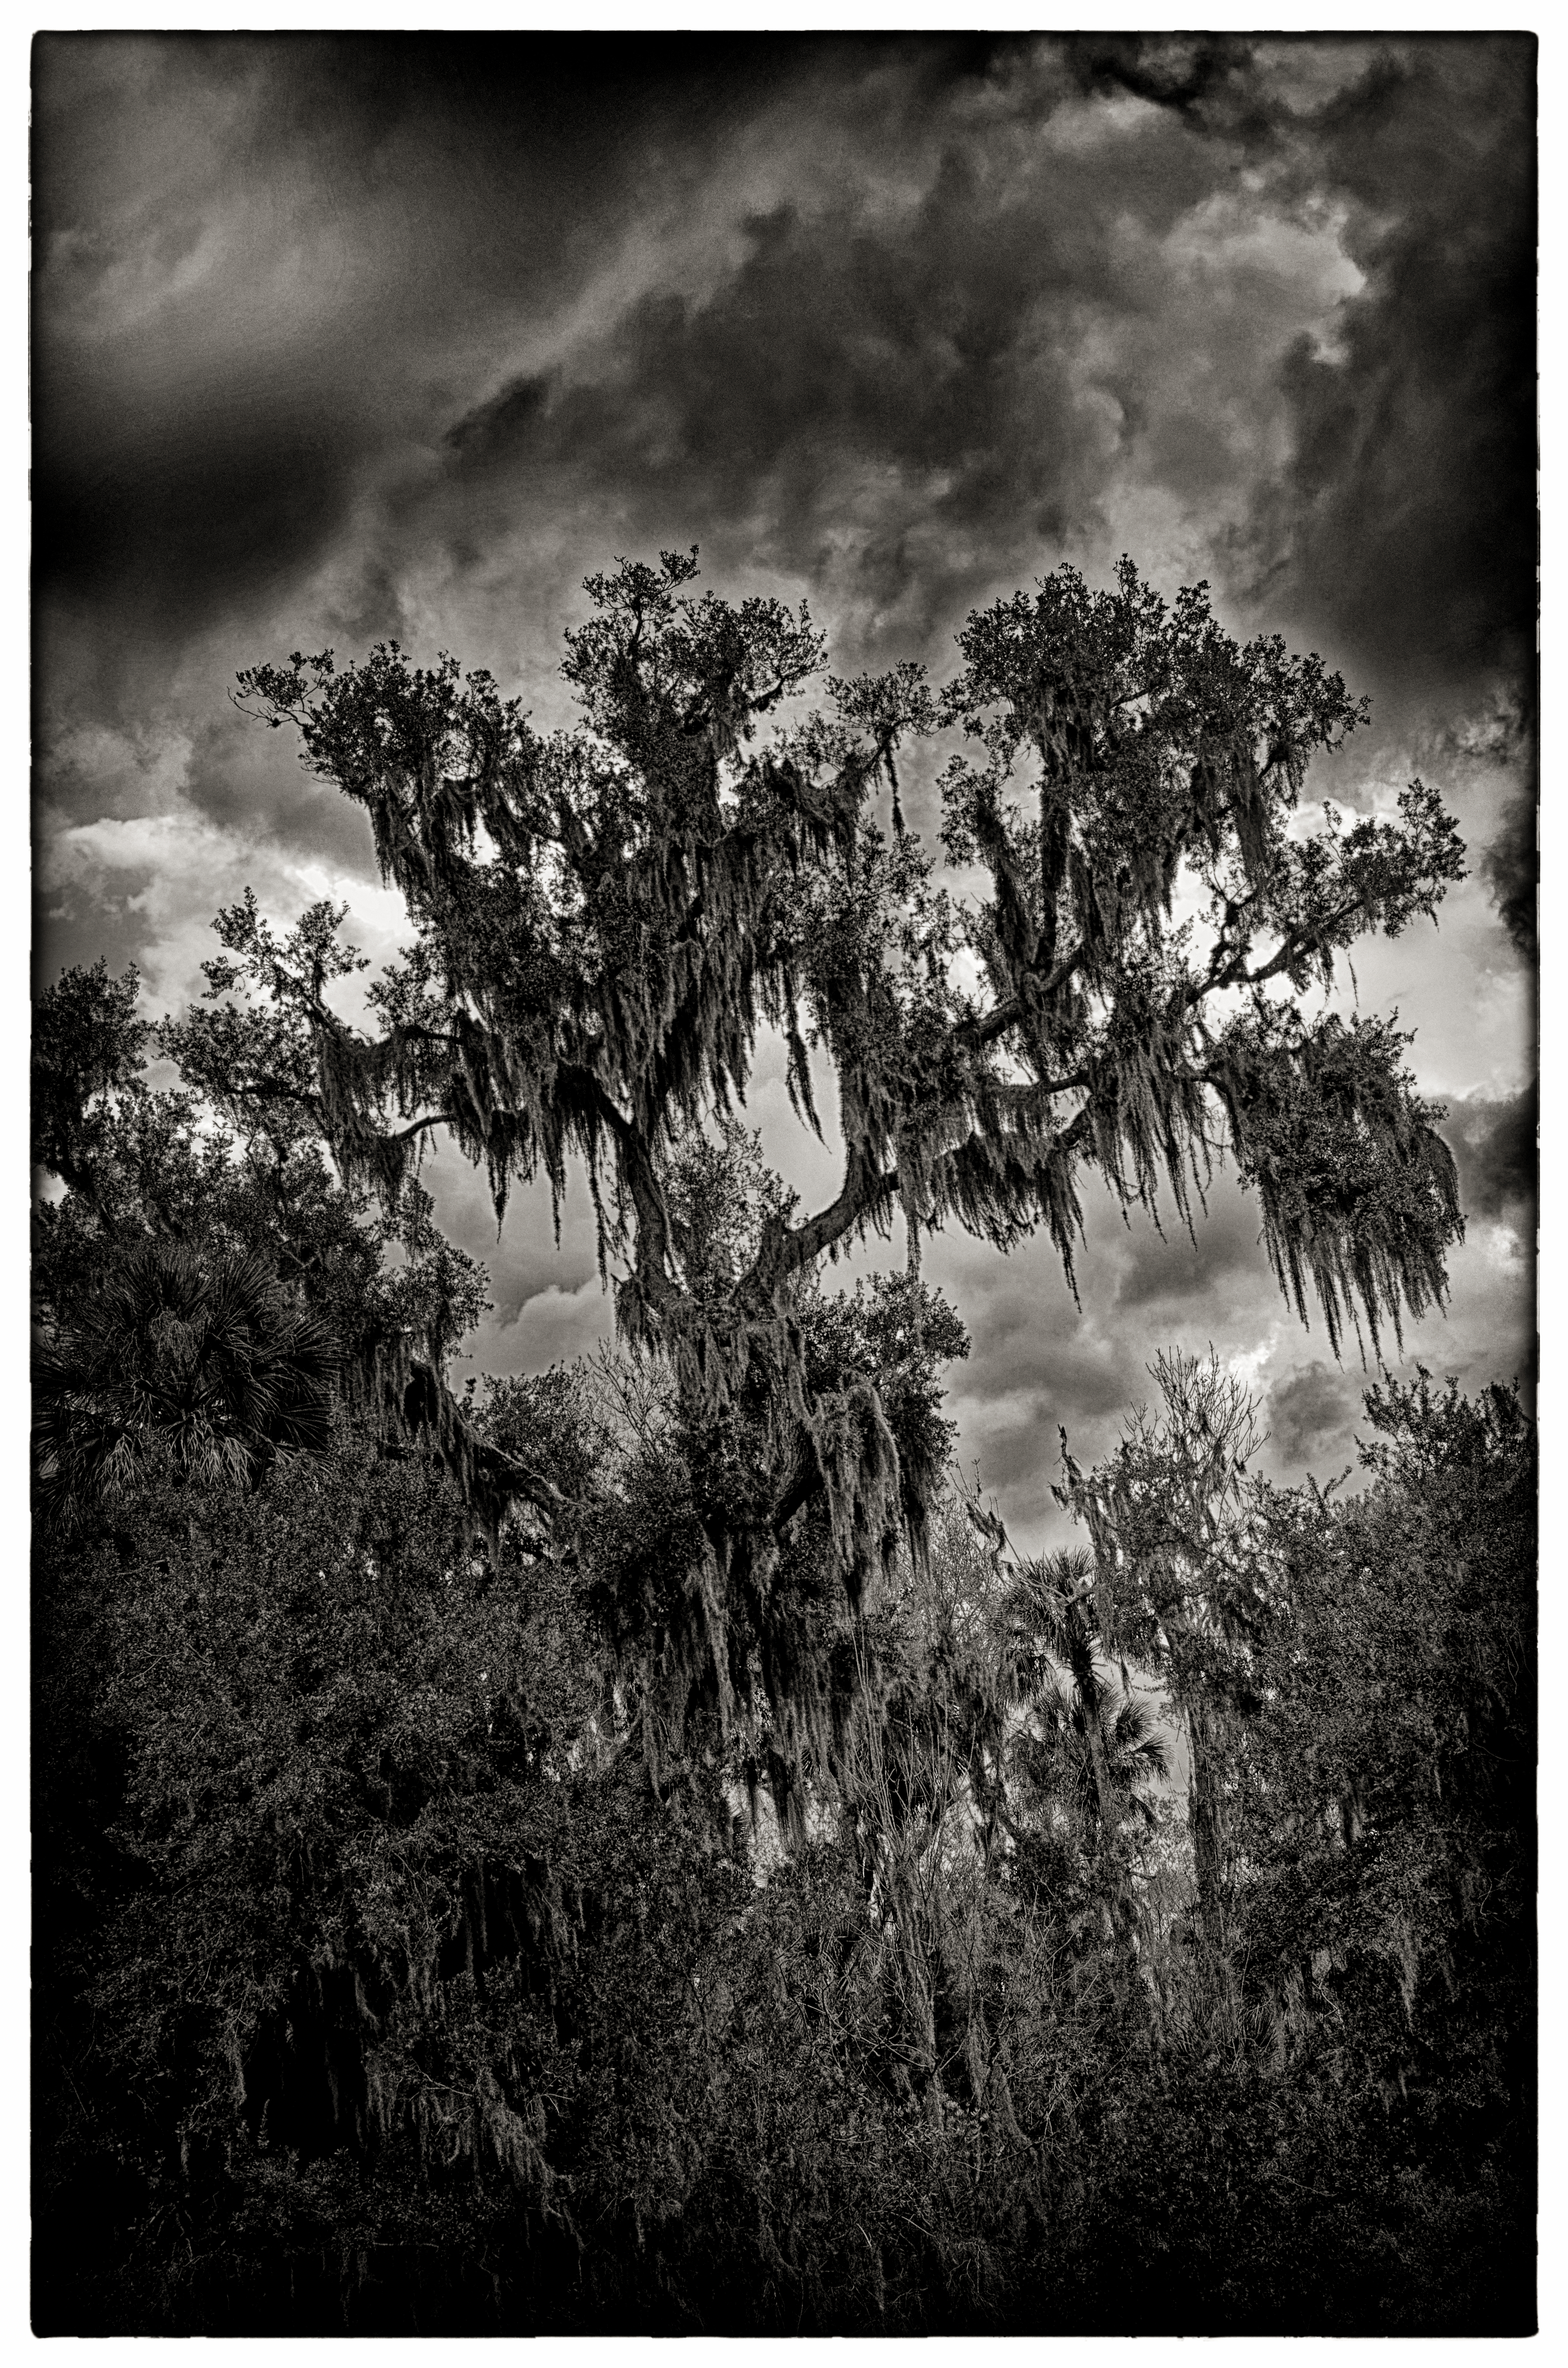 Storm Clouds and an Old Tree - 5522